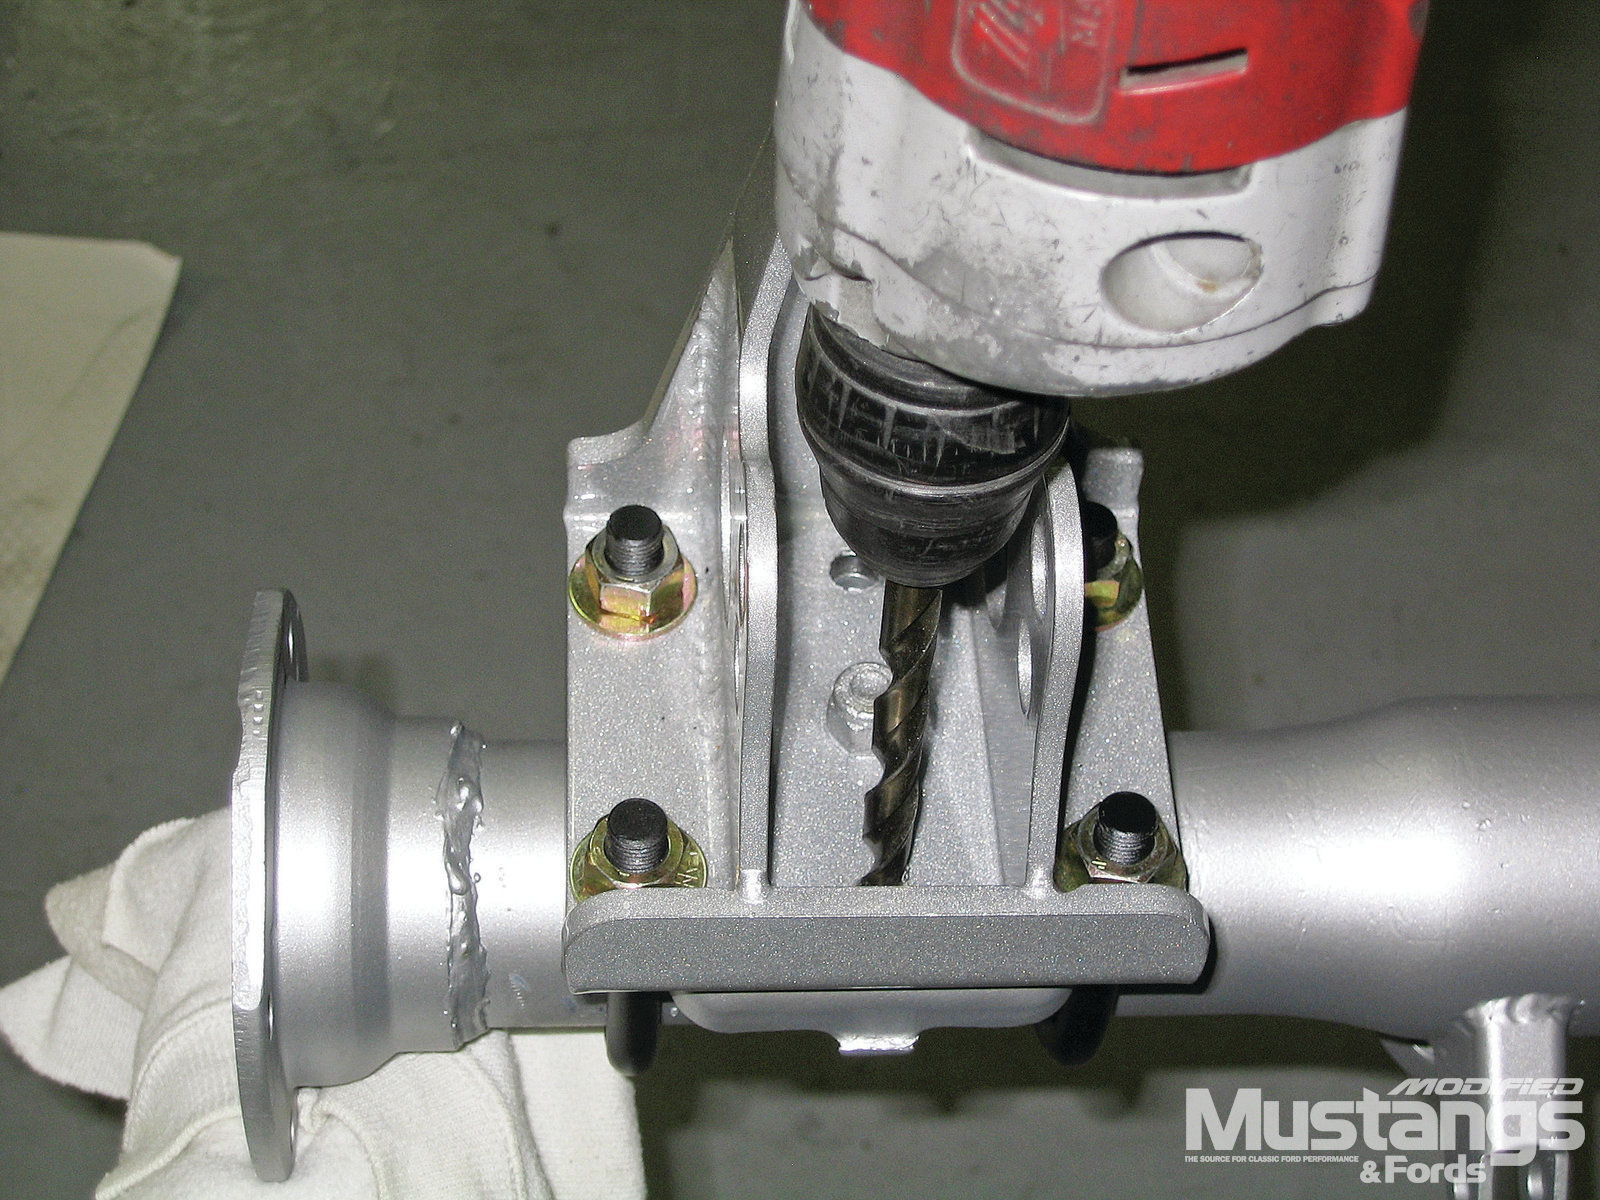 Mdmp 1201 Suspension Upgrade Get A Handle On It 003